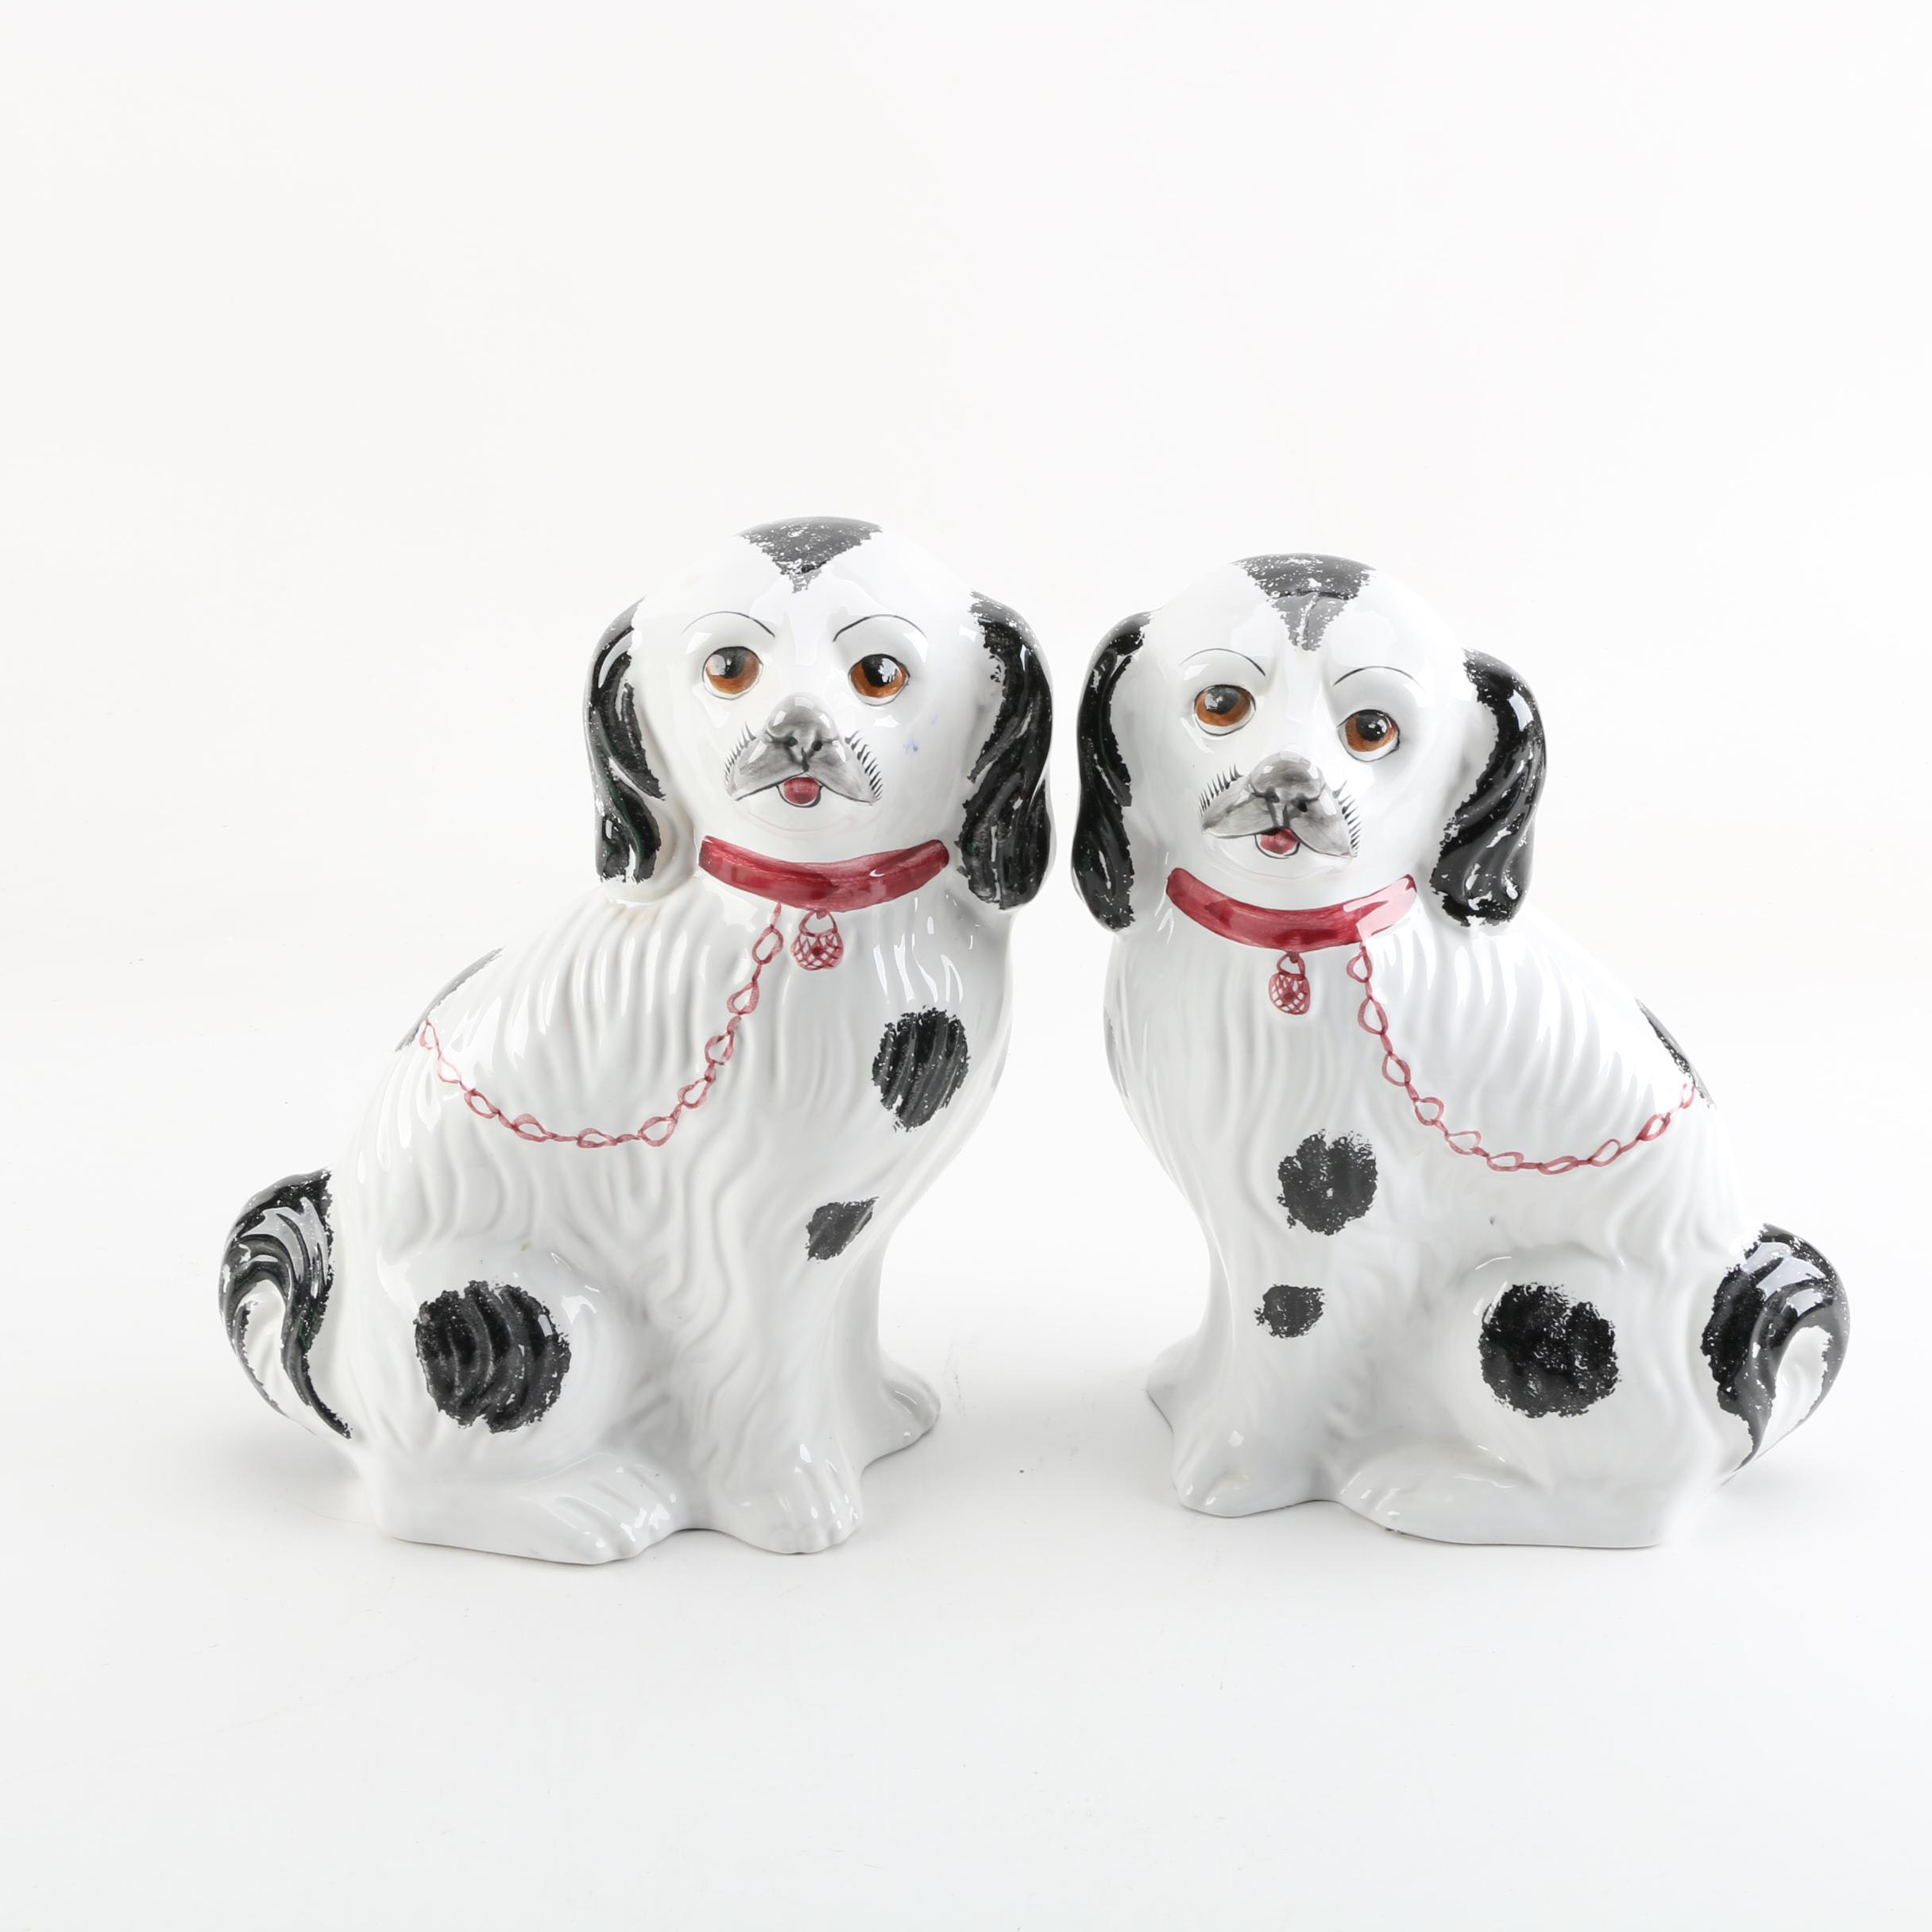 Hand-Painted Portuguese Staffordshire-Style Ceramic Dog Figurines